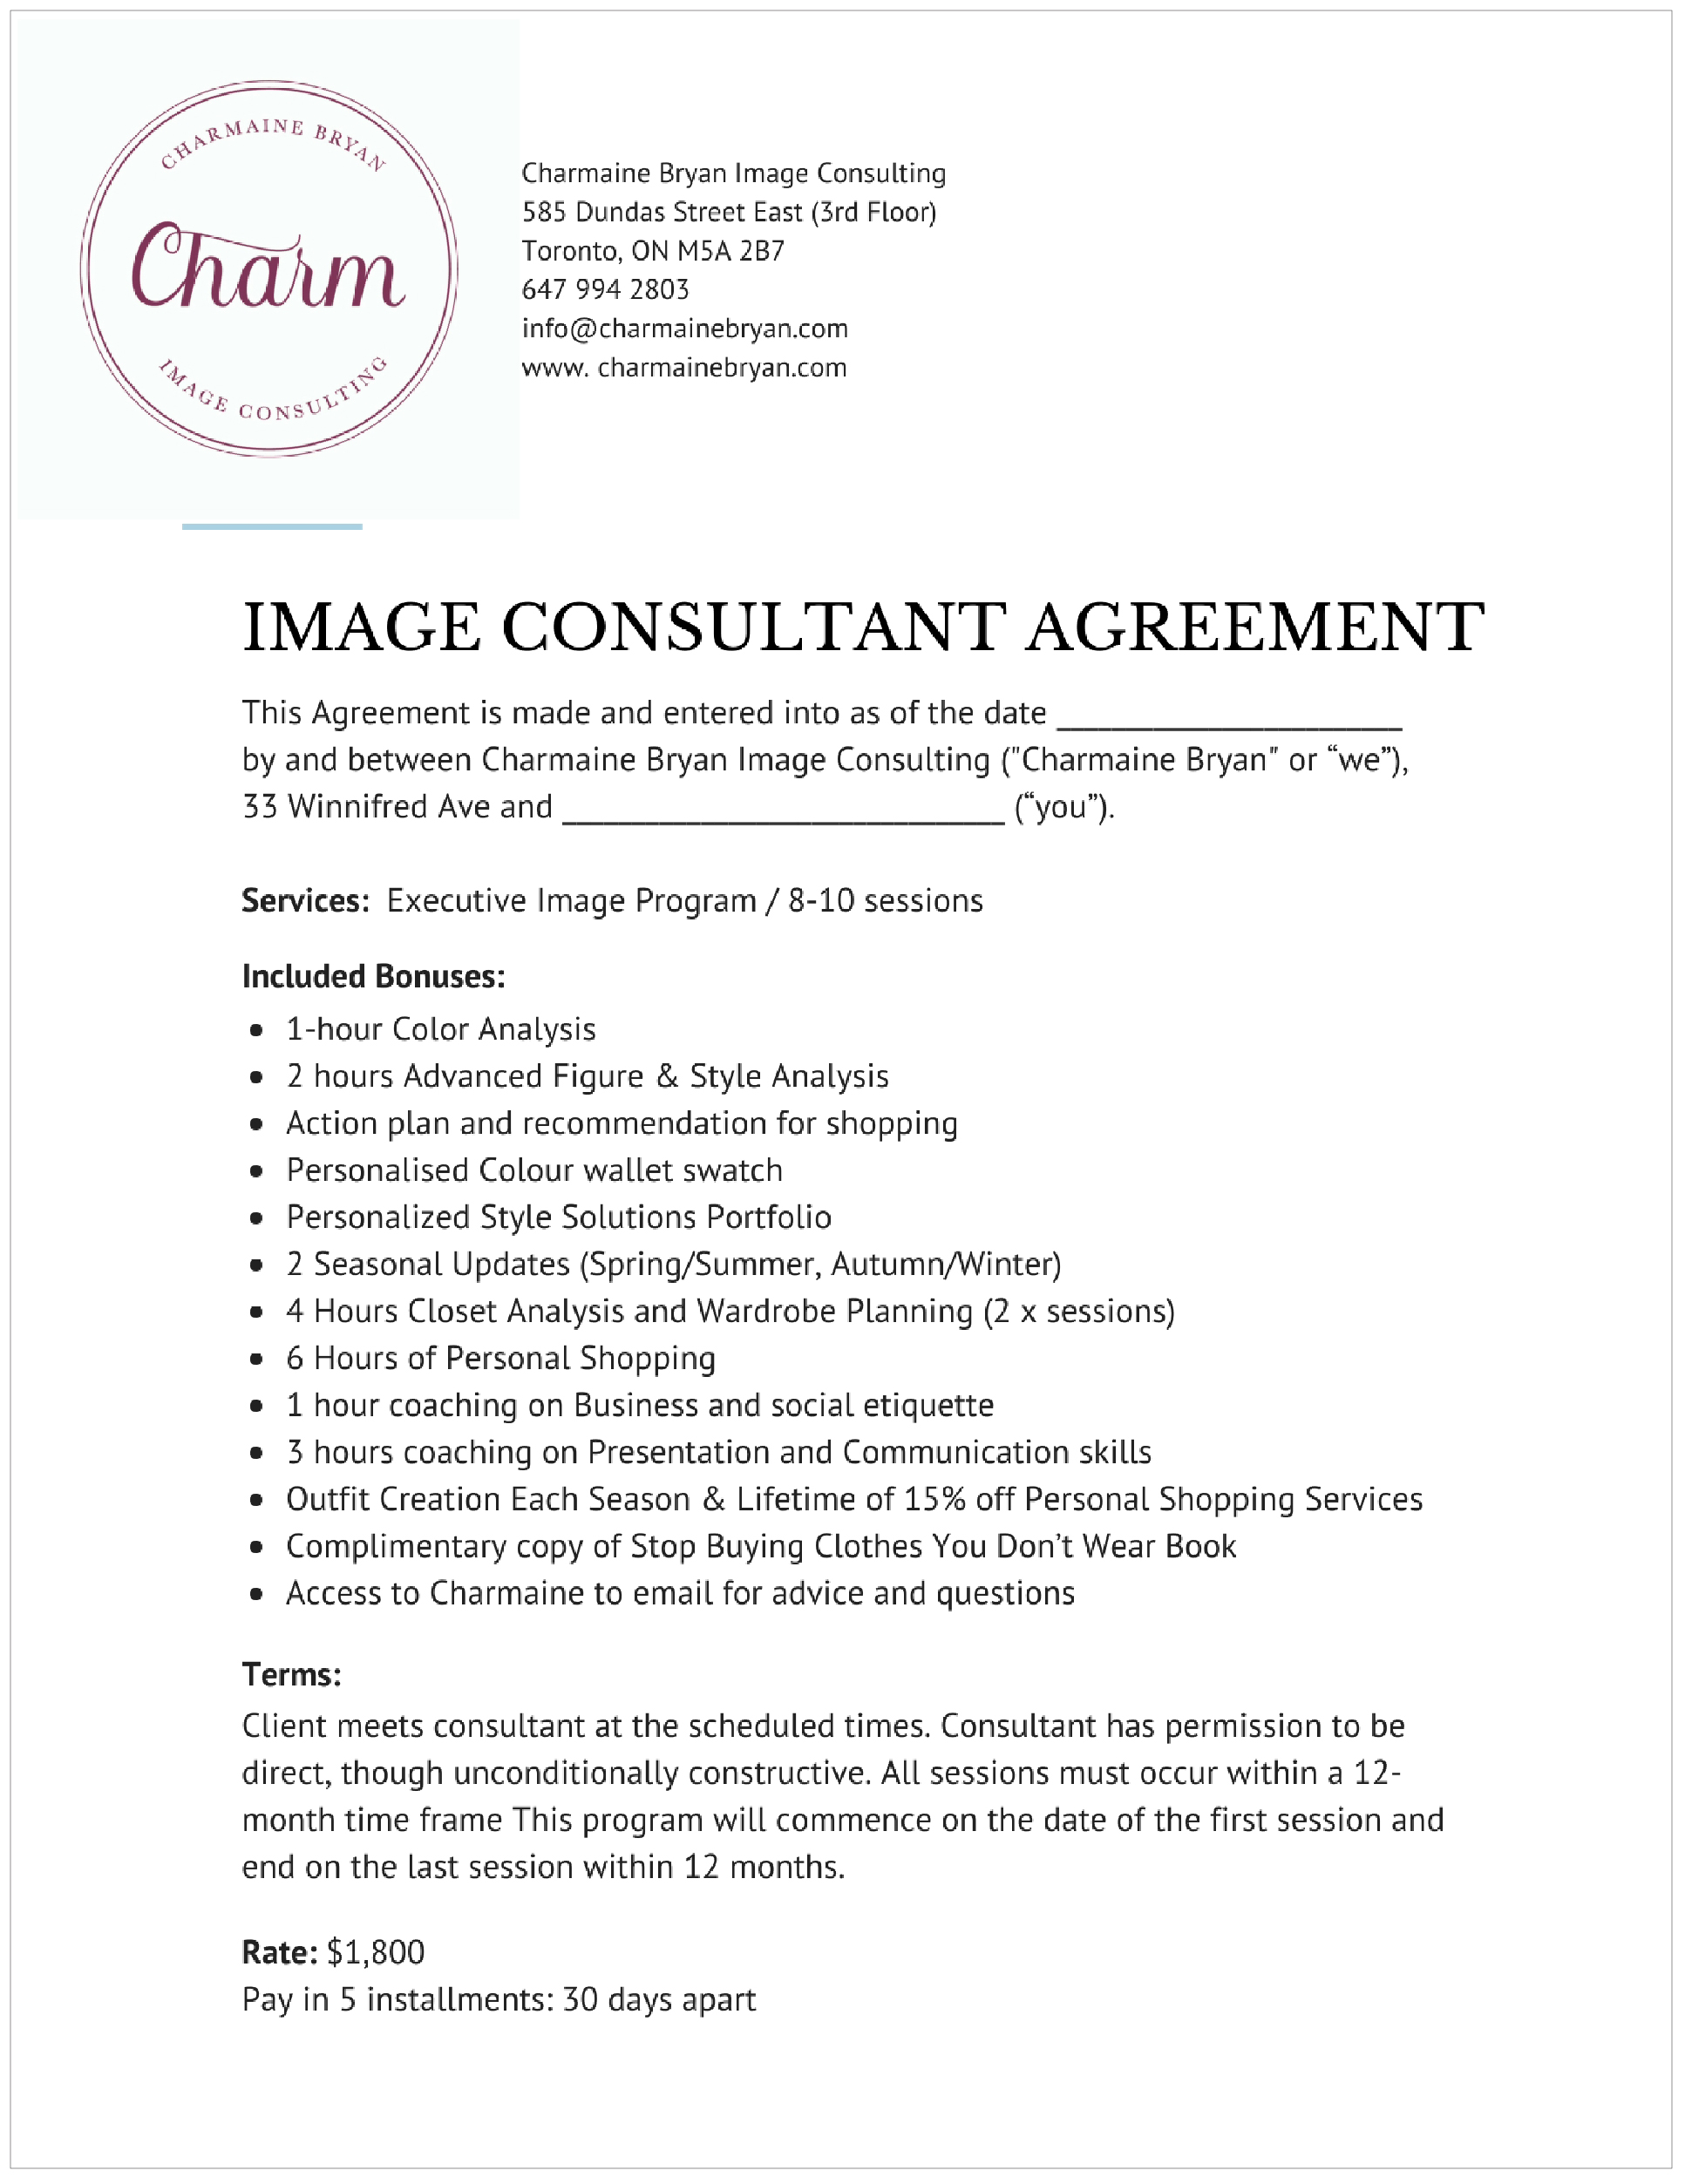 Collateral Piece - Formal Agreement Document (above)